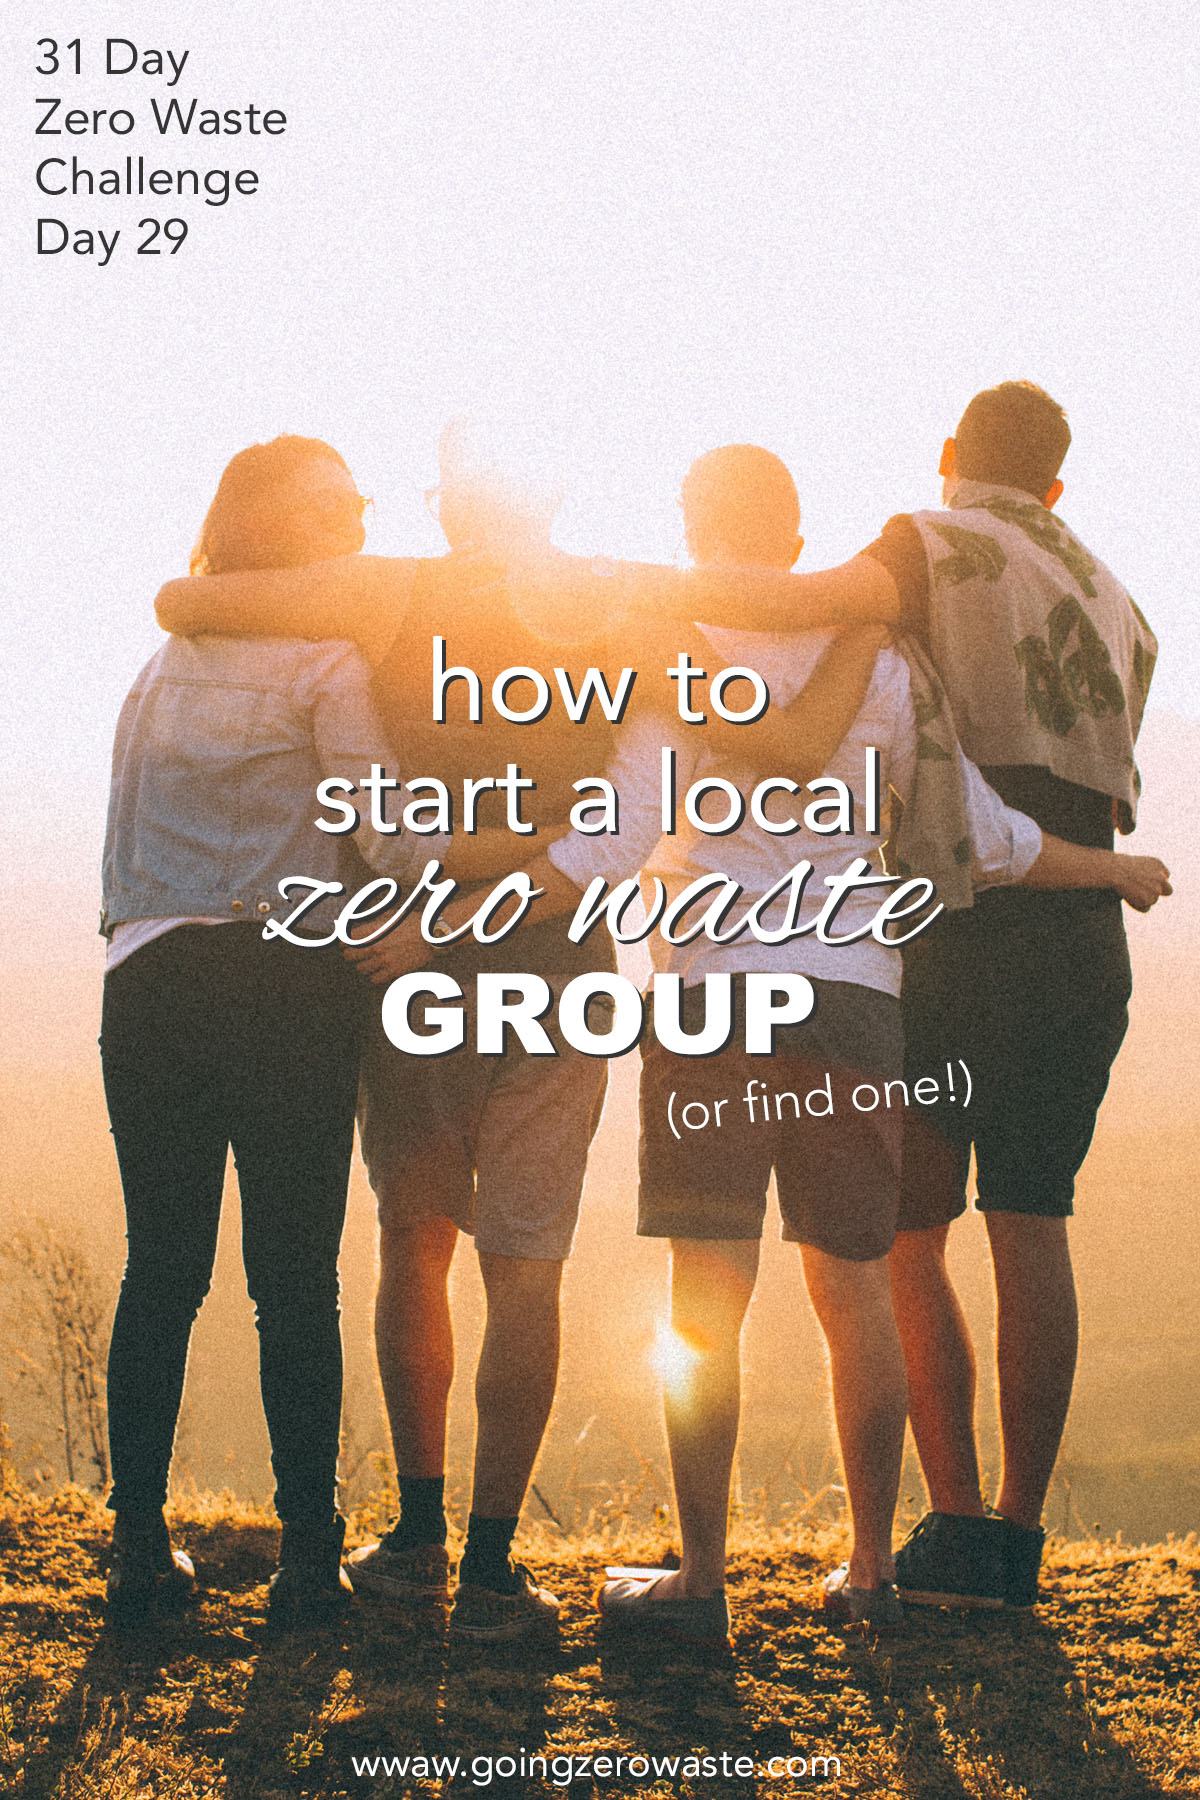 Start a Local Zero Waste Group - Day 29 of the Zero Waste Challenge